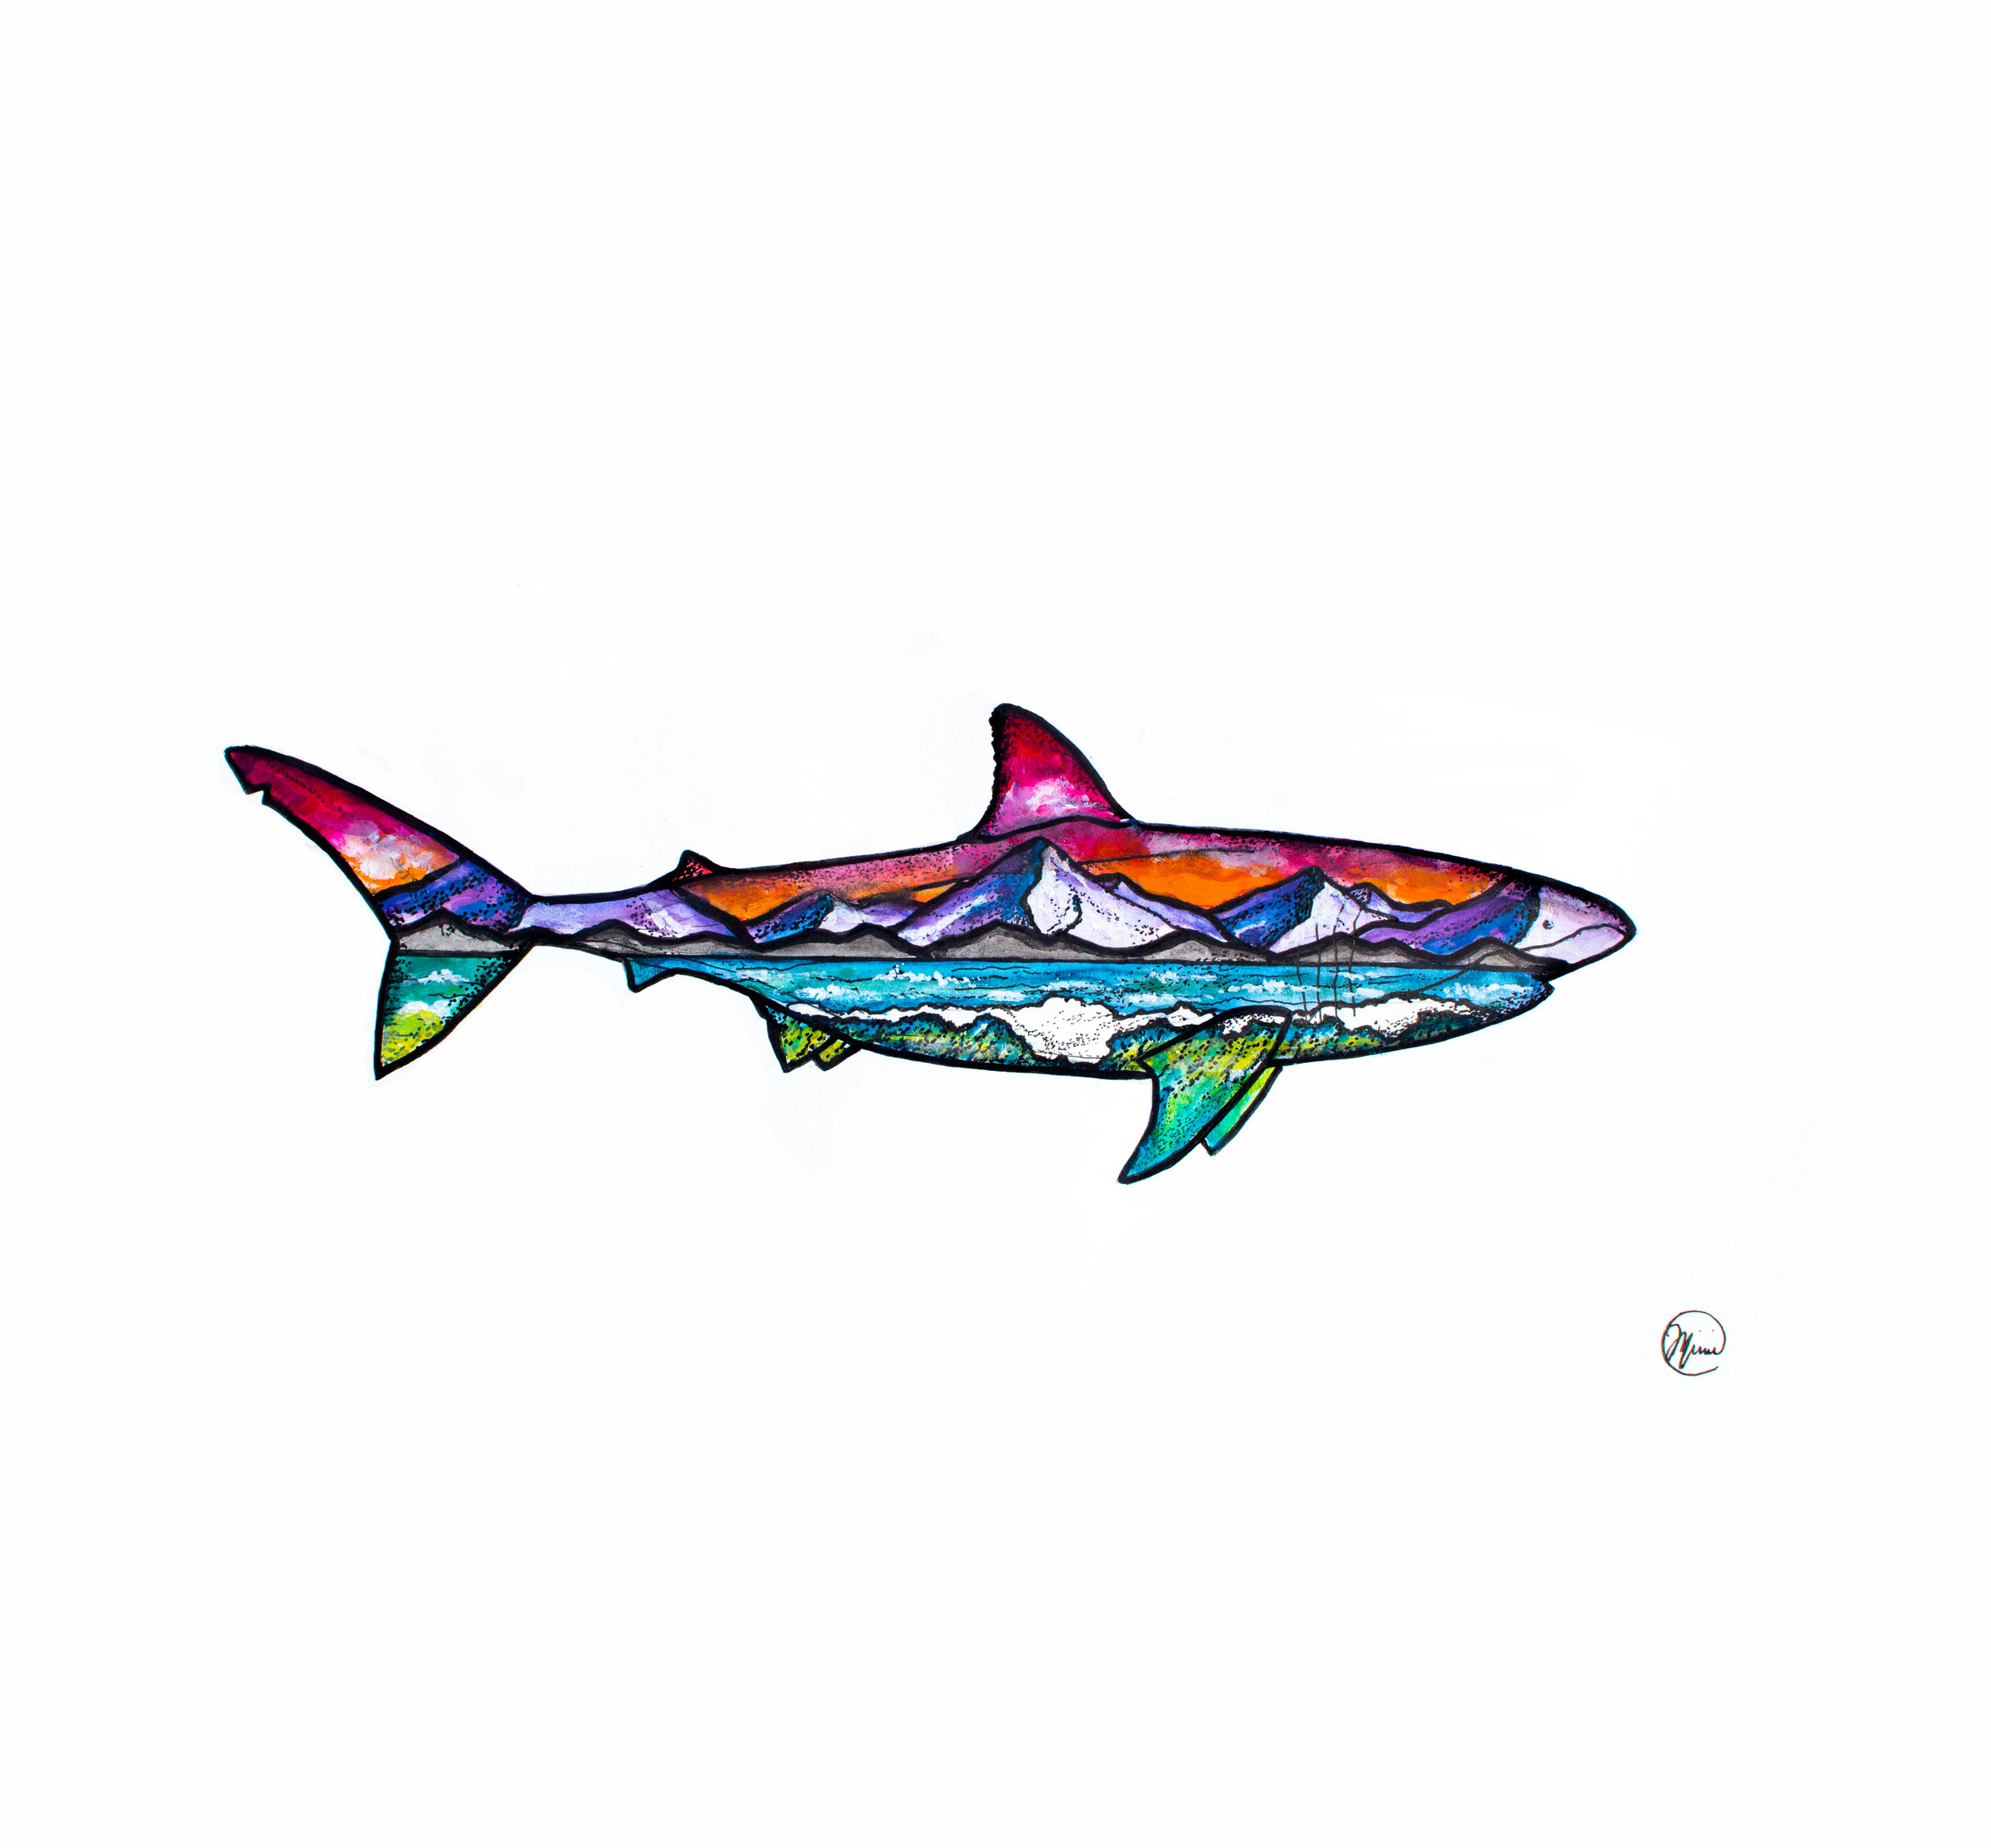 shark illustration watercolor.jpg